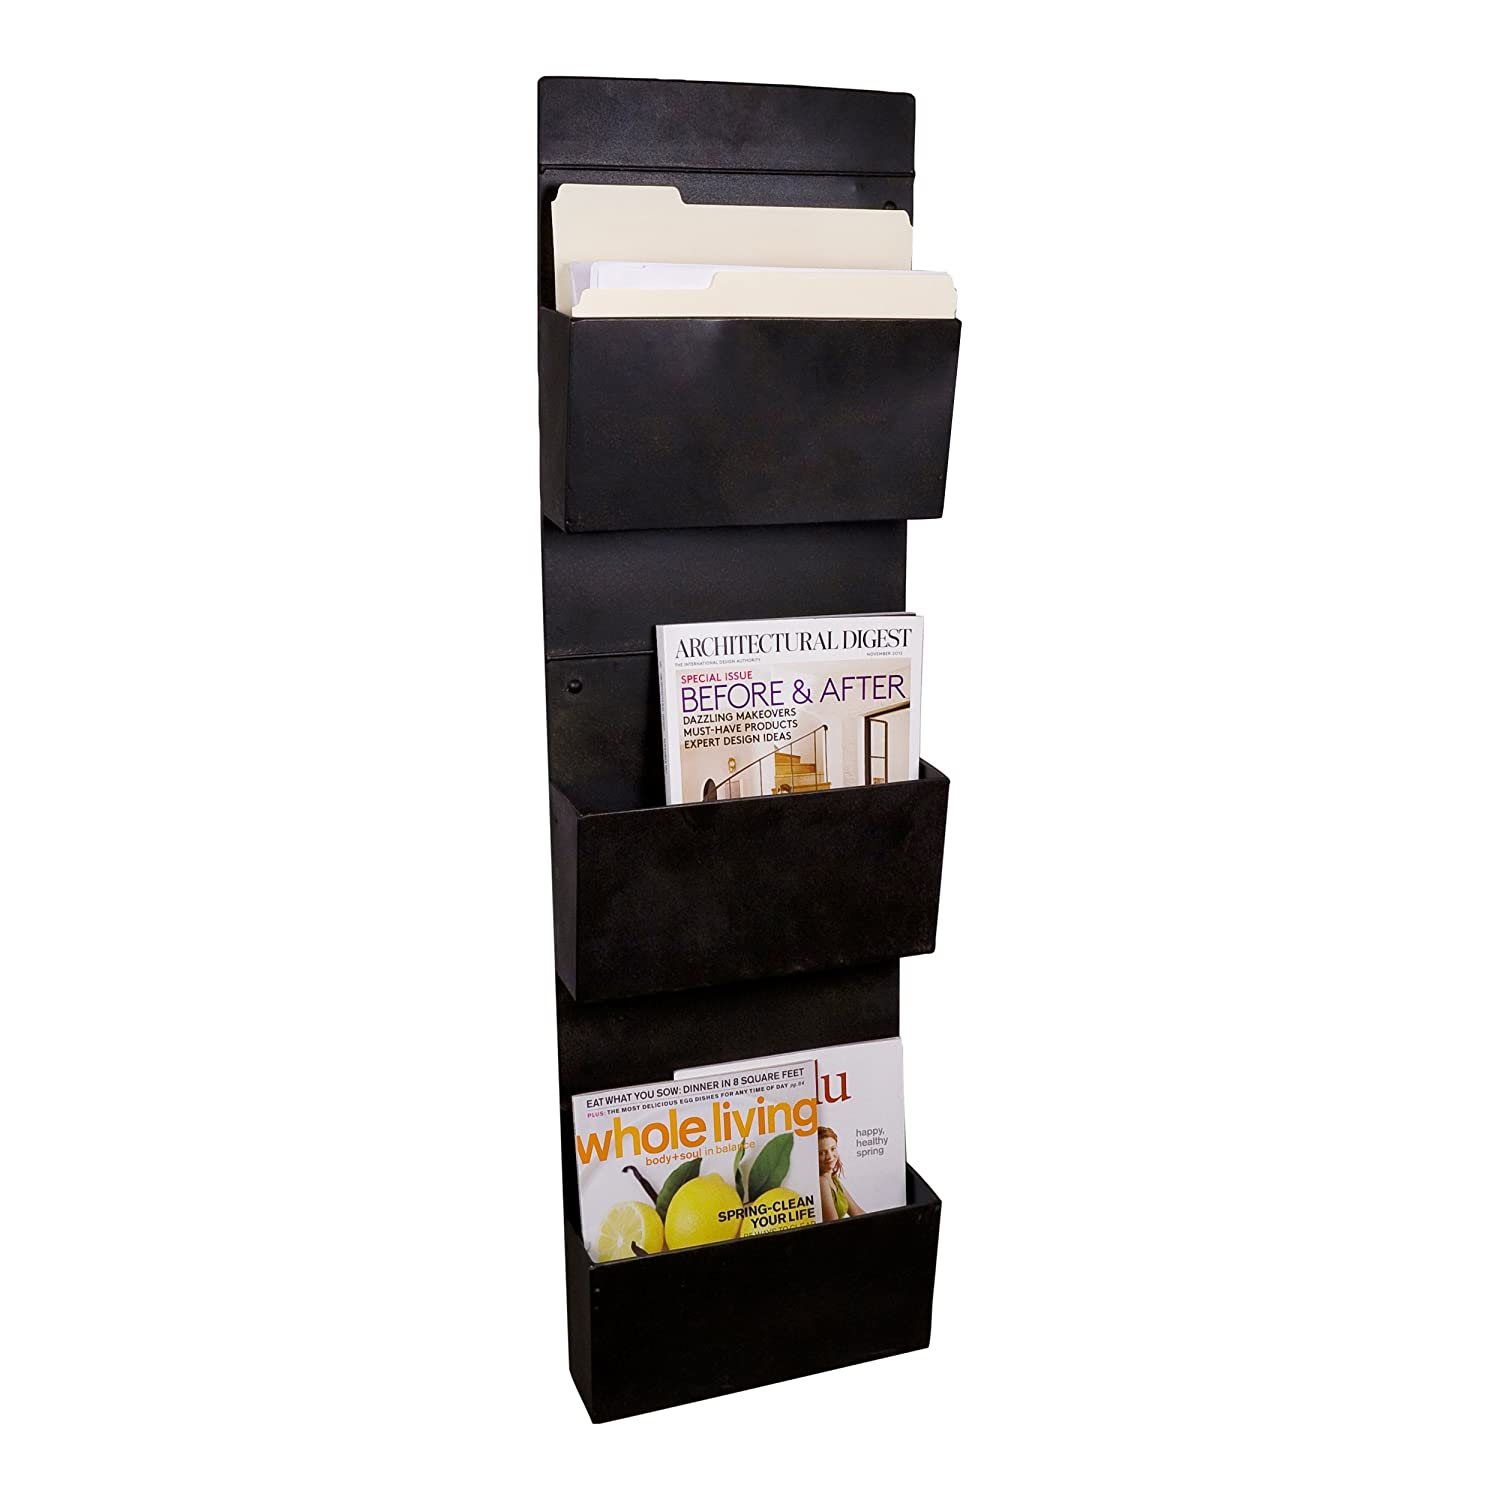 slot filing mounted magazine mygift hanging document pin black mount rack wall system